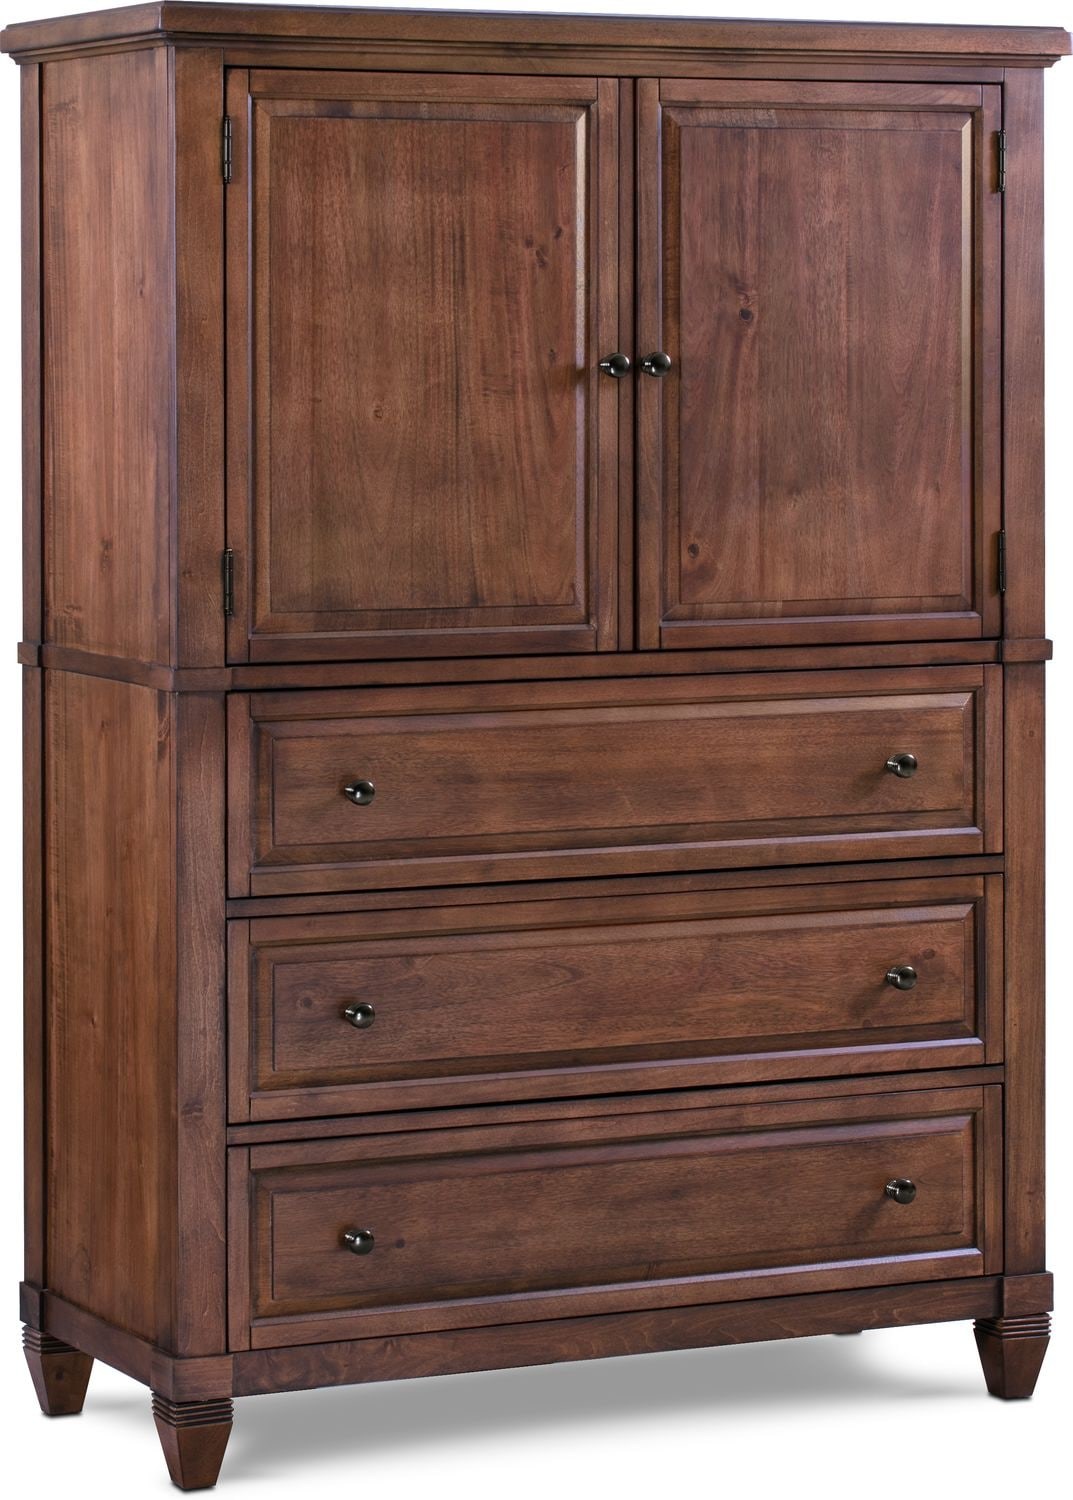 Bedroom Furniture - Rosalie Armoire - Chestnut